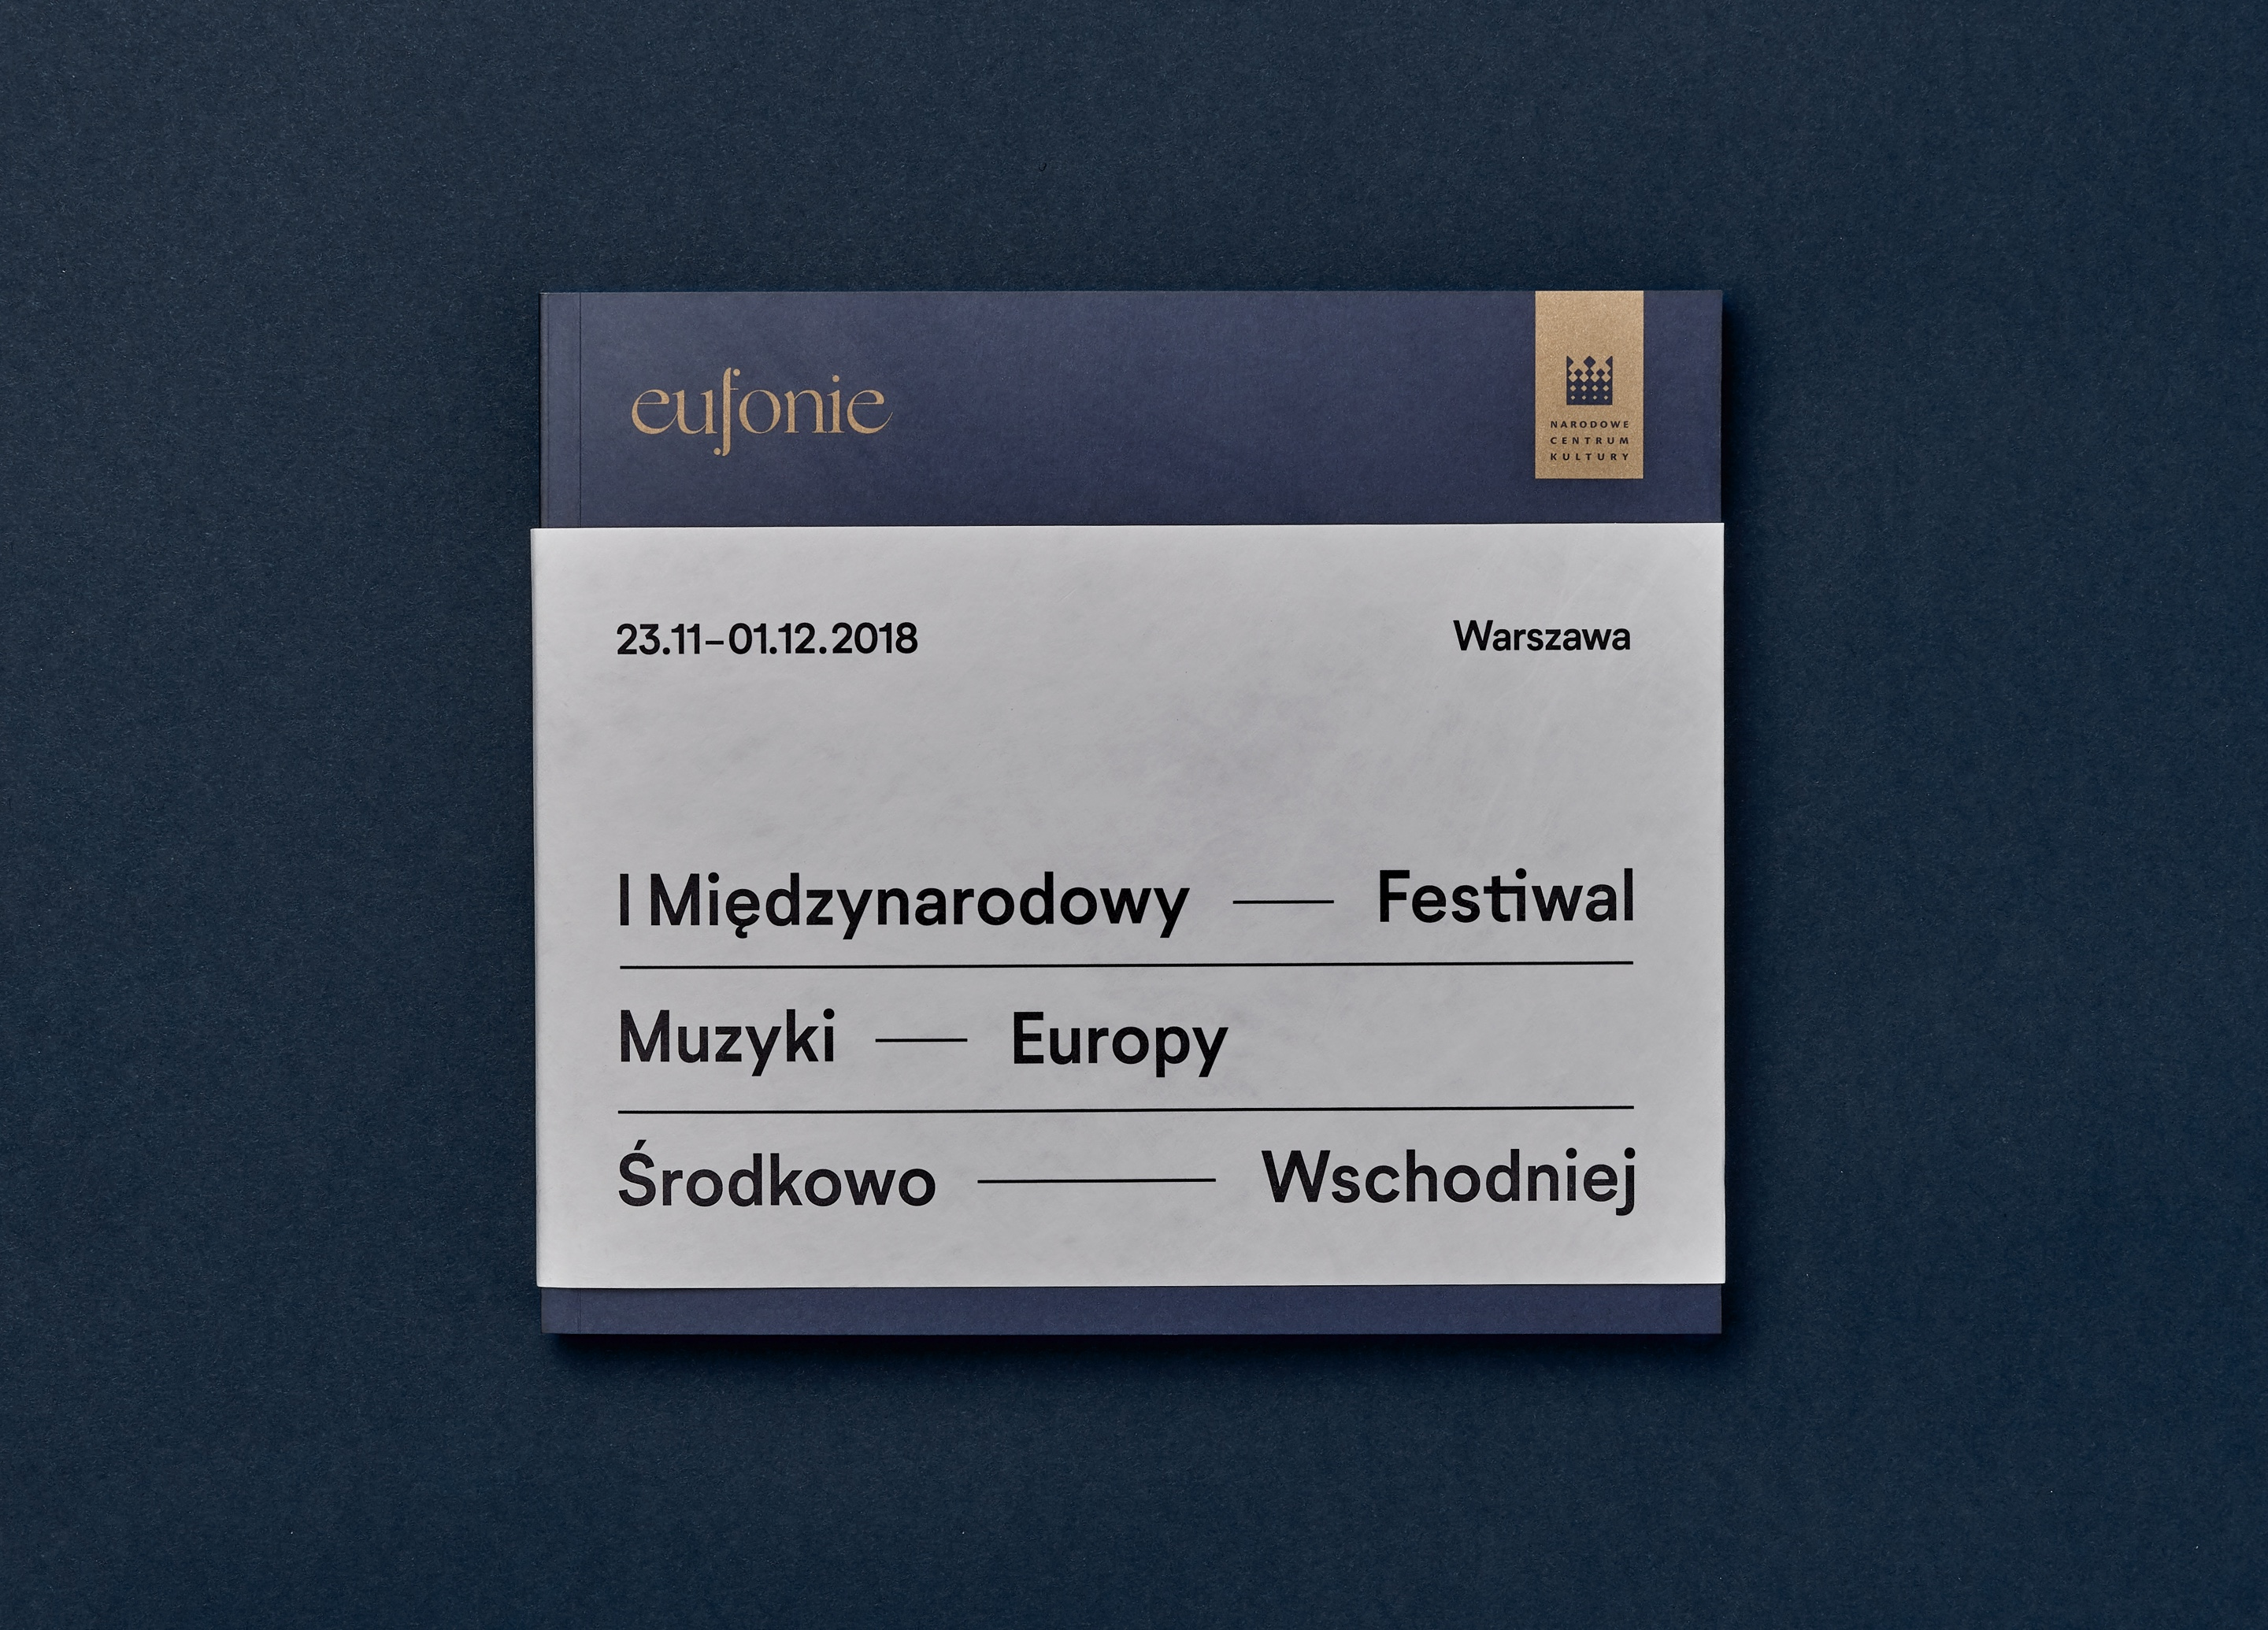 Booklet cover design - Eufonie Festival by Uniforma